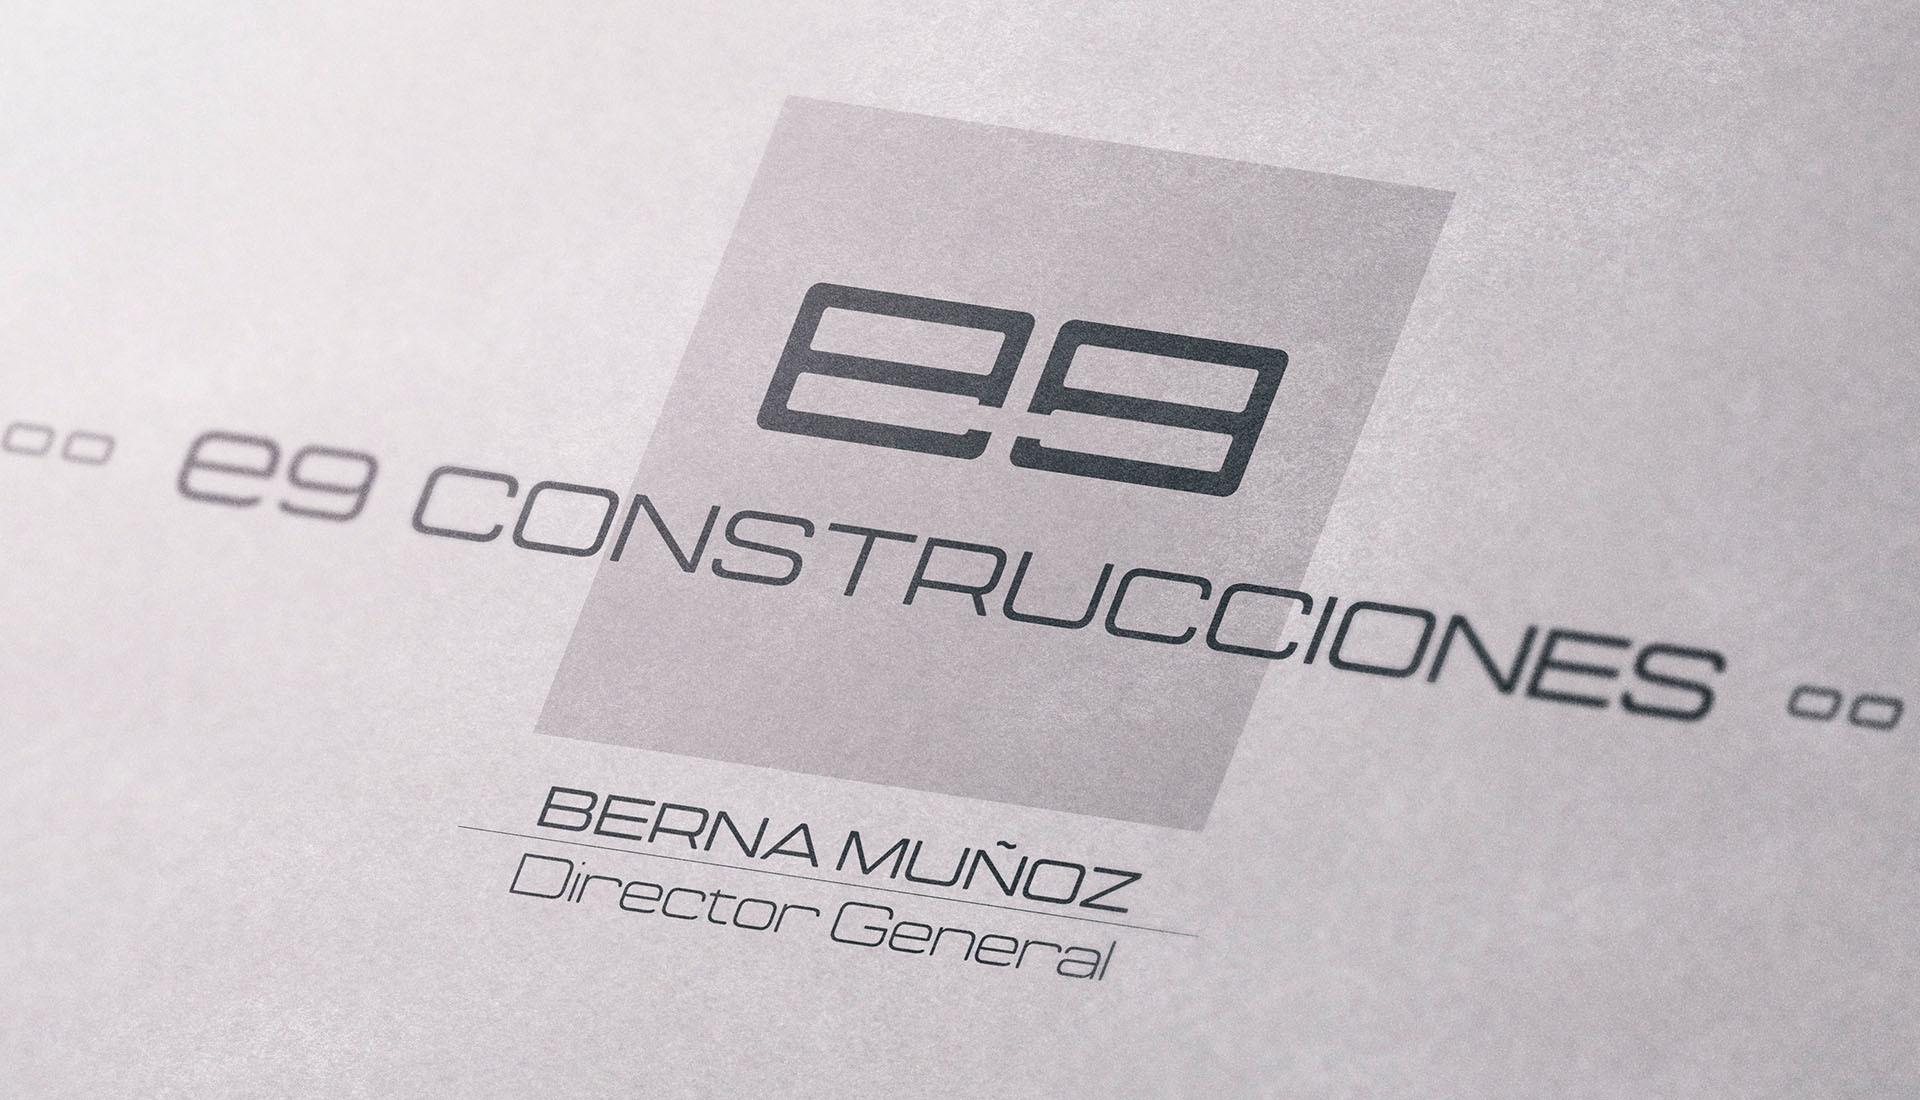 trabajo-e9 construcciones-agencia de marketing valencia-agencia de publicidad-agencia de marketing digital valencia-constructora en valencia-2